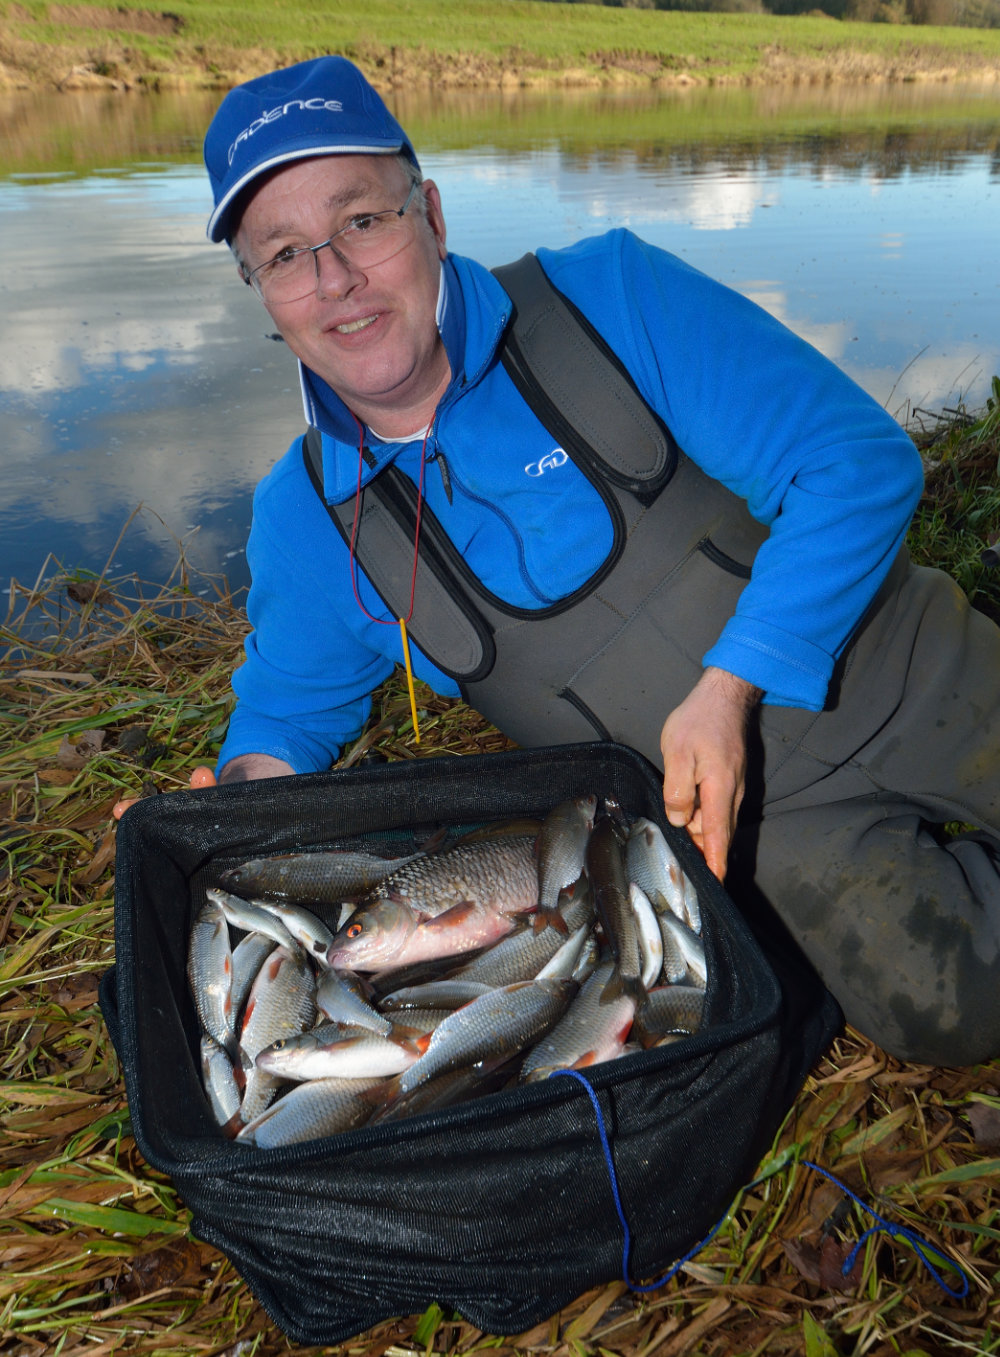 Deadly Method - Alan with 14-16lb of prime autumn Ribble roach and dace   which fell to slider tactics using bread and maggot hook bait